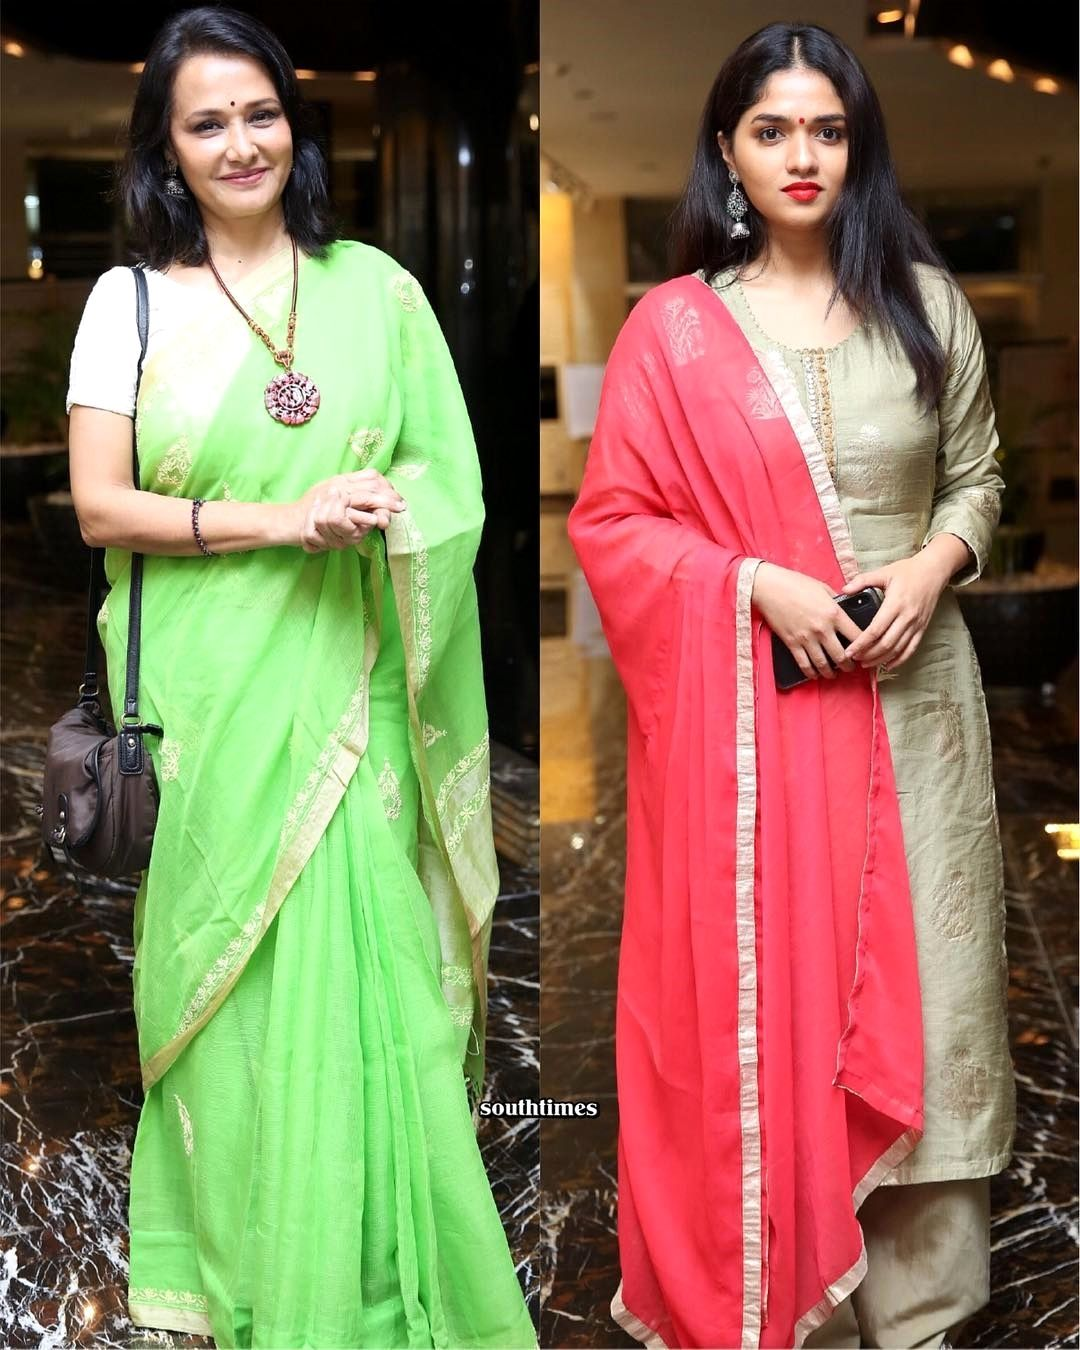 Amala and Sunainaa at Zee5 original series launch  The two